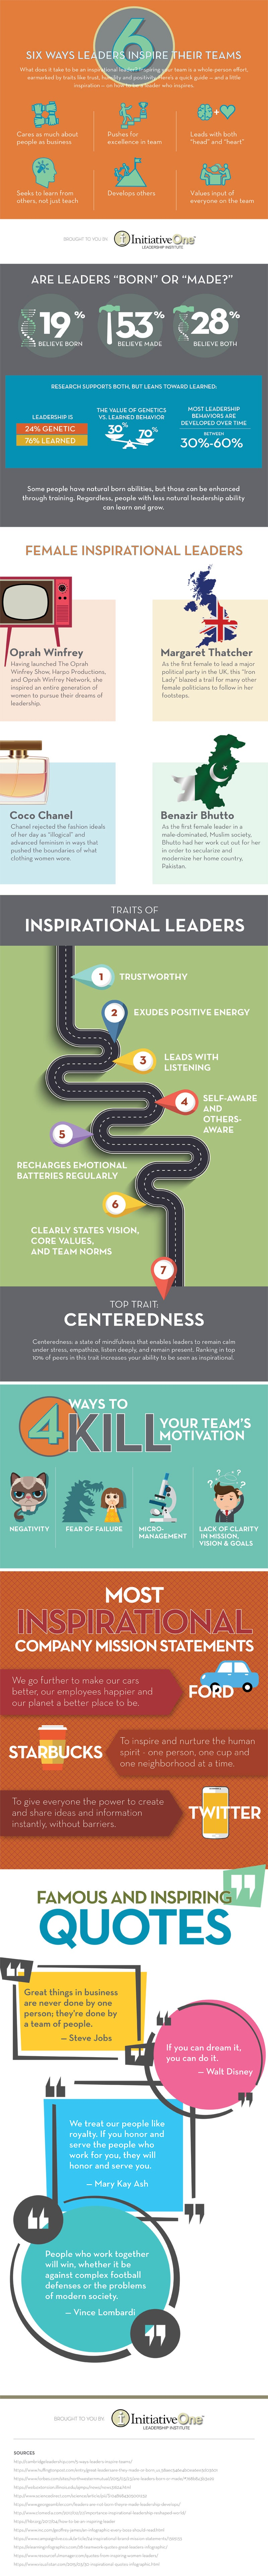 The 6 Best Ways Leaders Can Inspire Their Teams (Infographic)